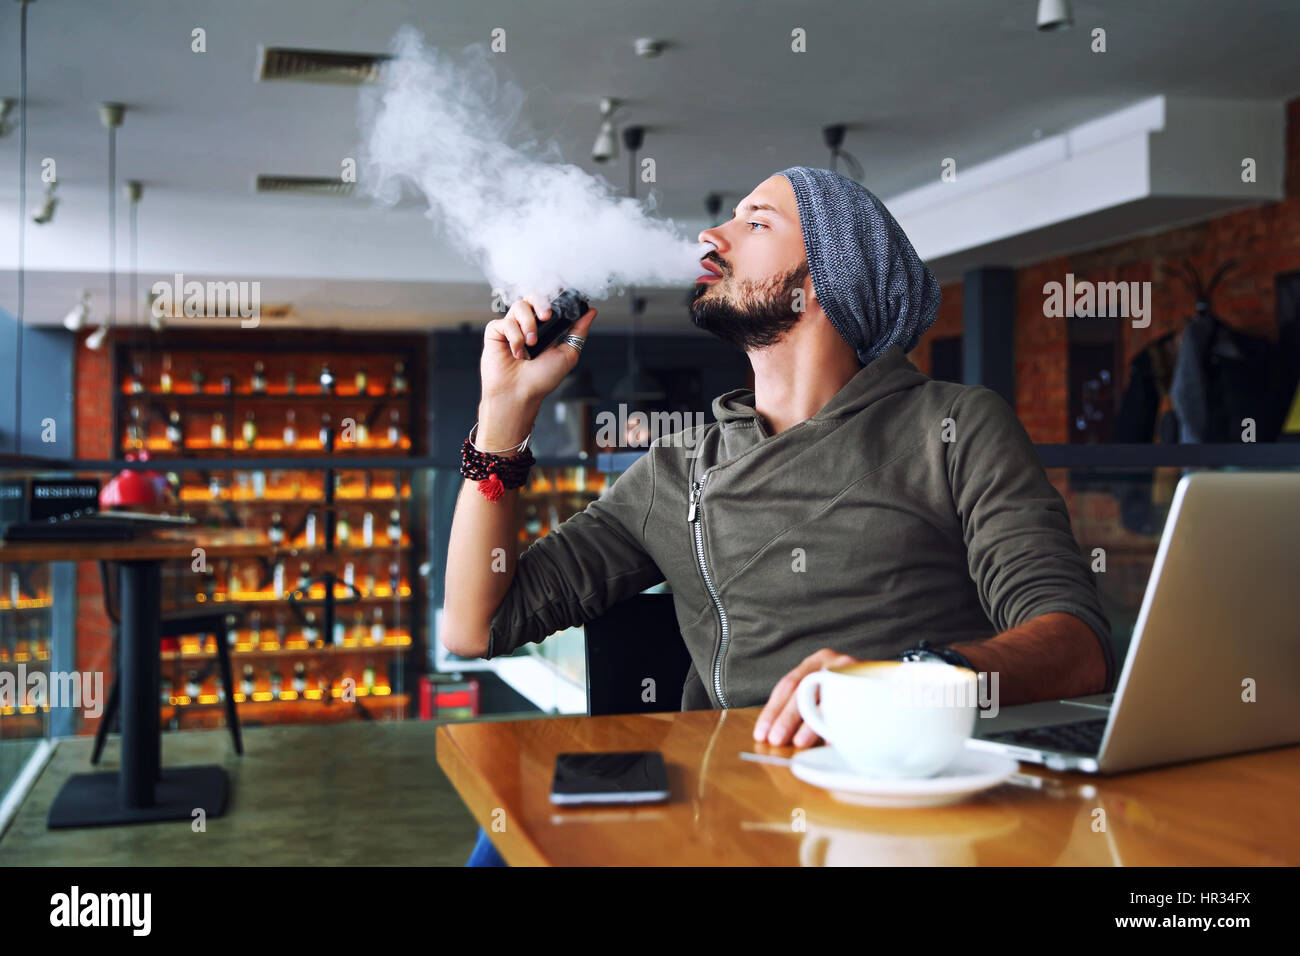 Young handsome hipster man with beard sitting in cafe with a cup of coffee, vaping and releases a cloud of vapor. - Stock Image